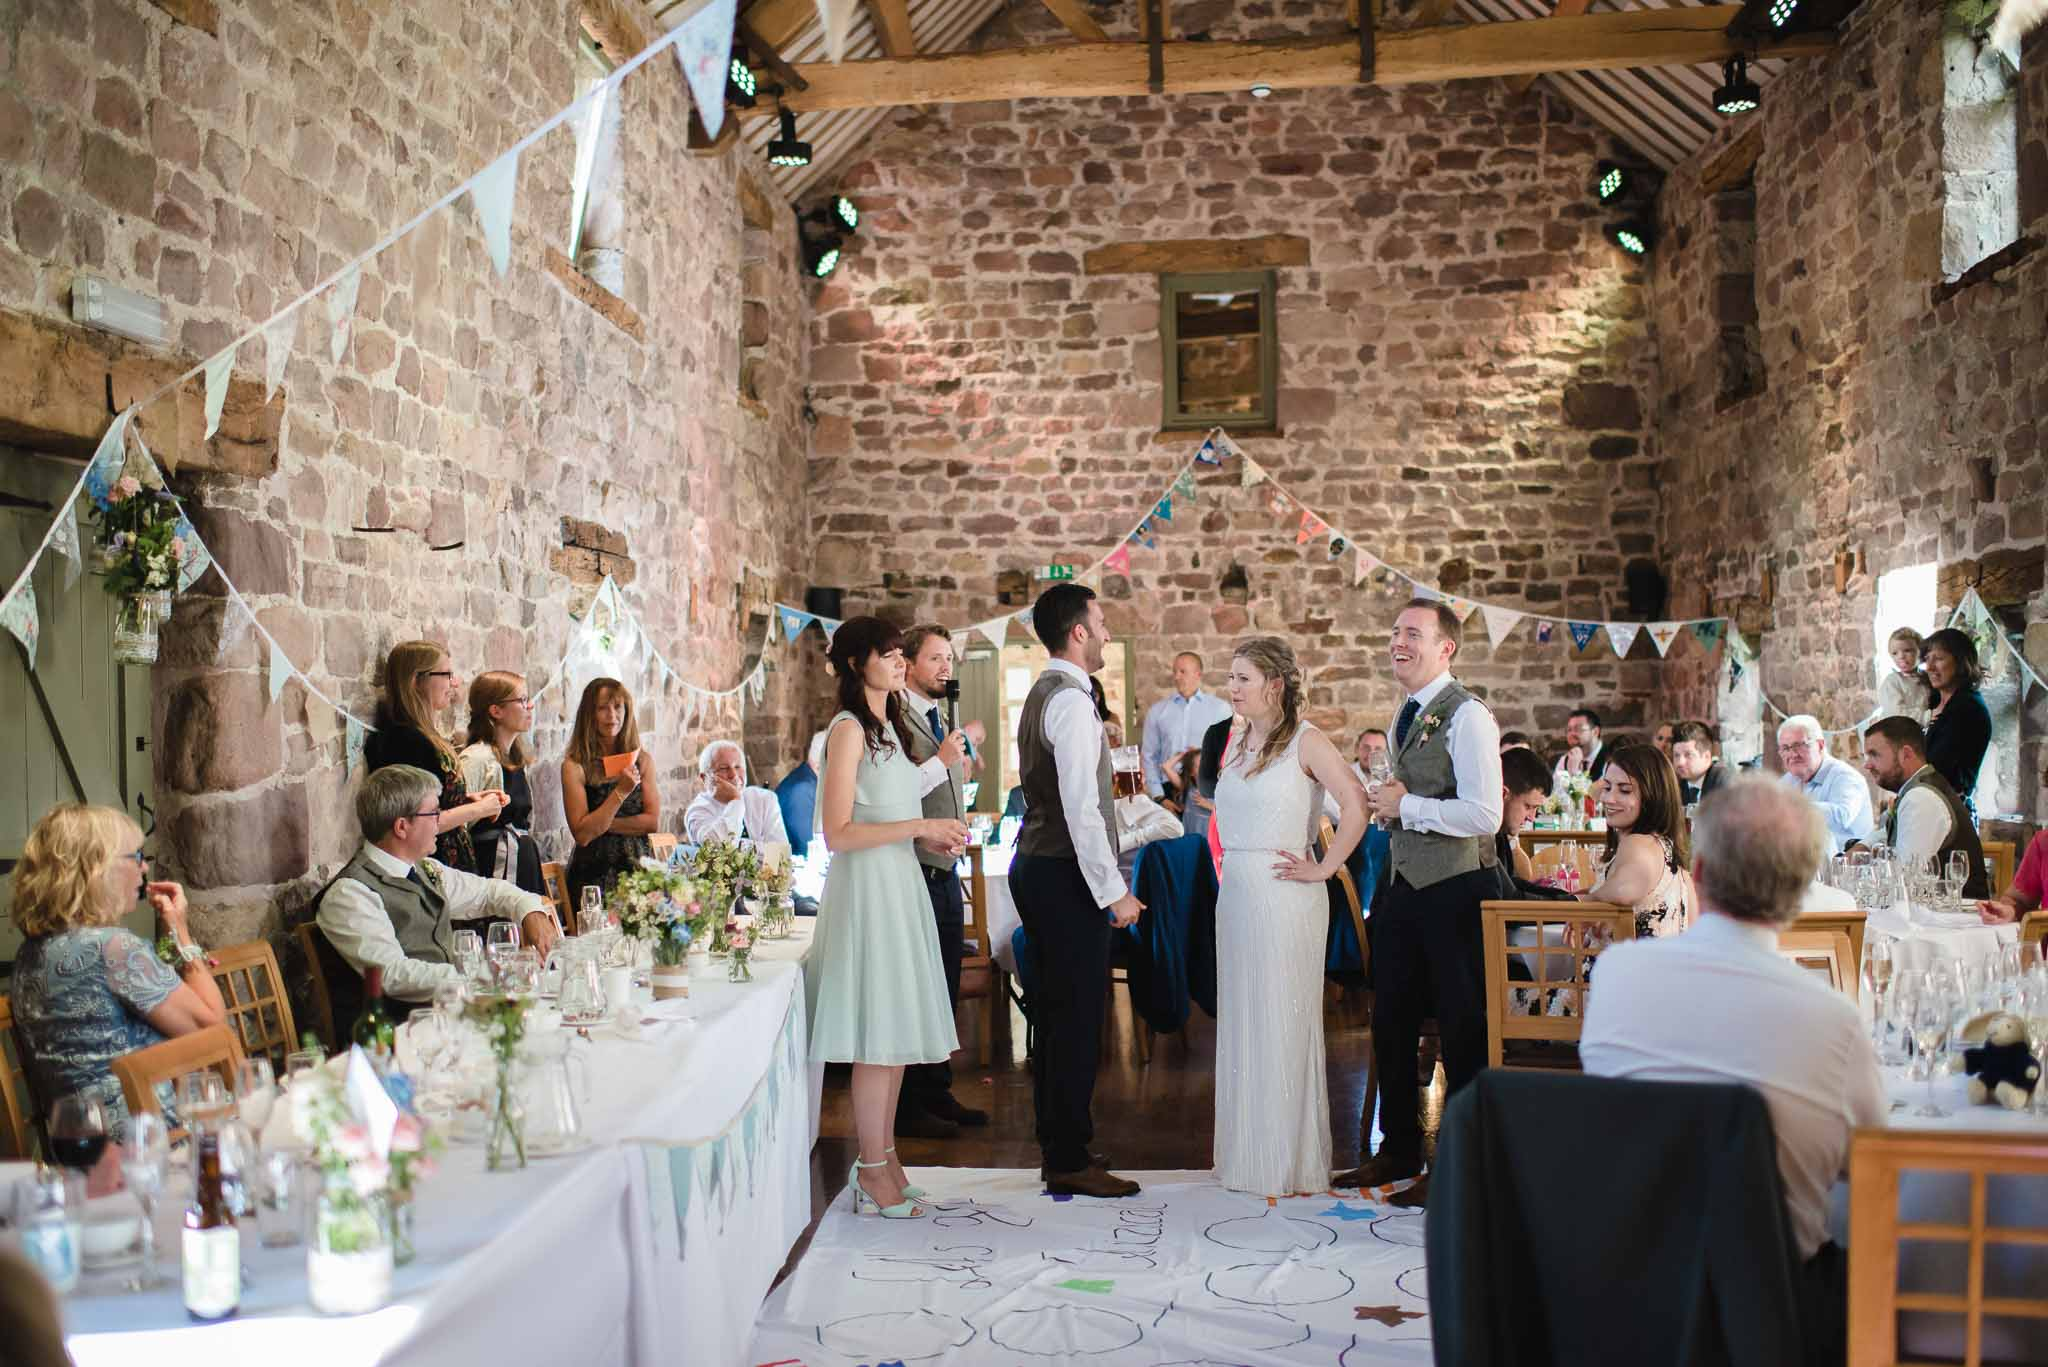 The_Ashes_Barns_Country_House_Wedding_Emma_Hare_Photography_Bev_Nathan-60.jpg